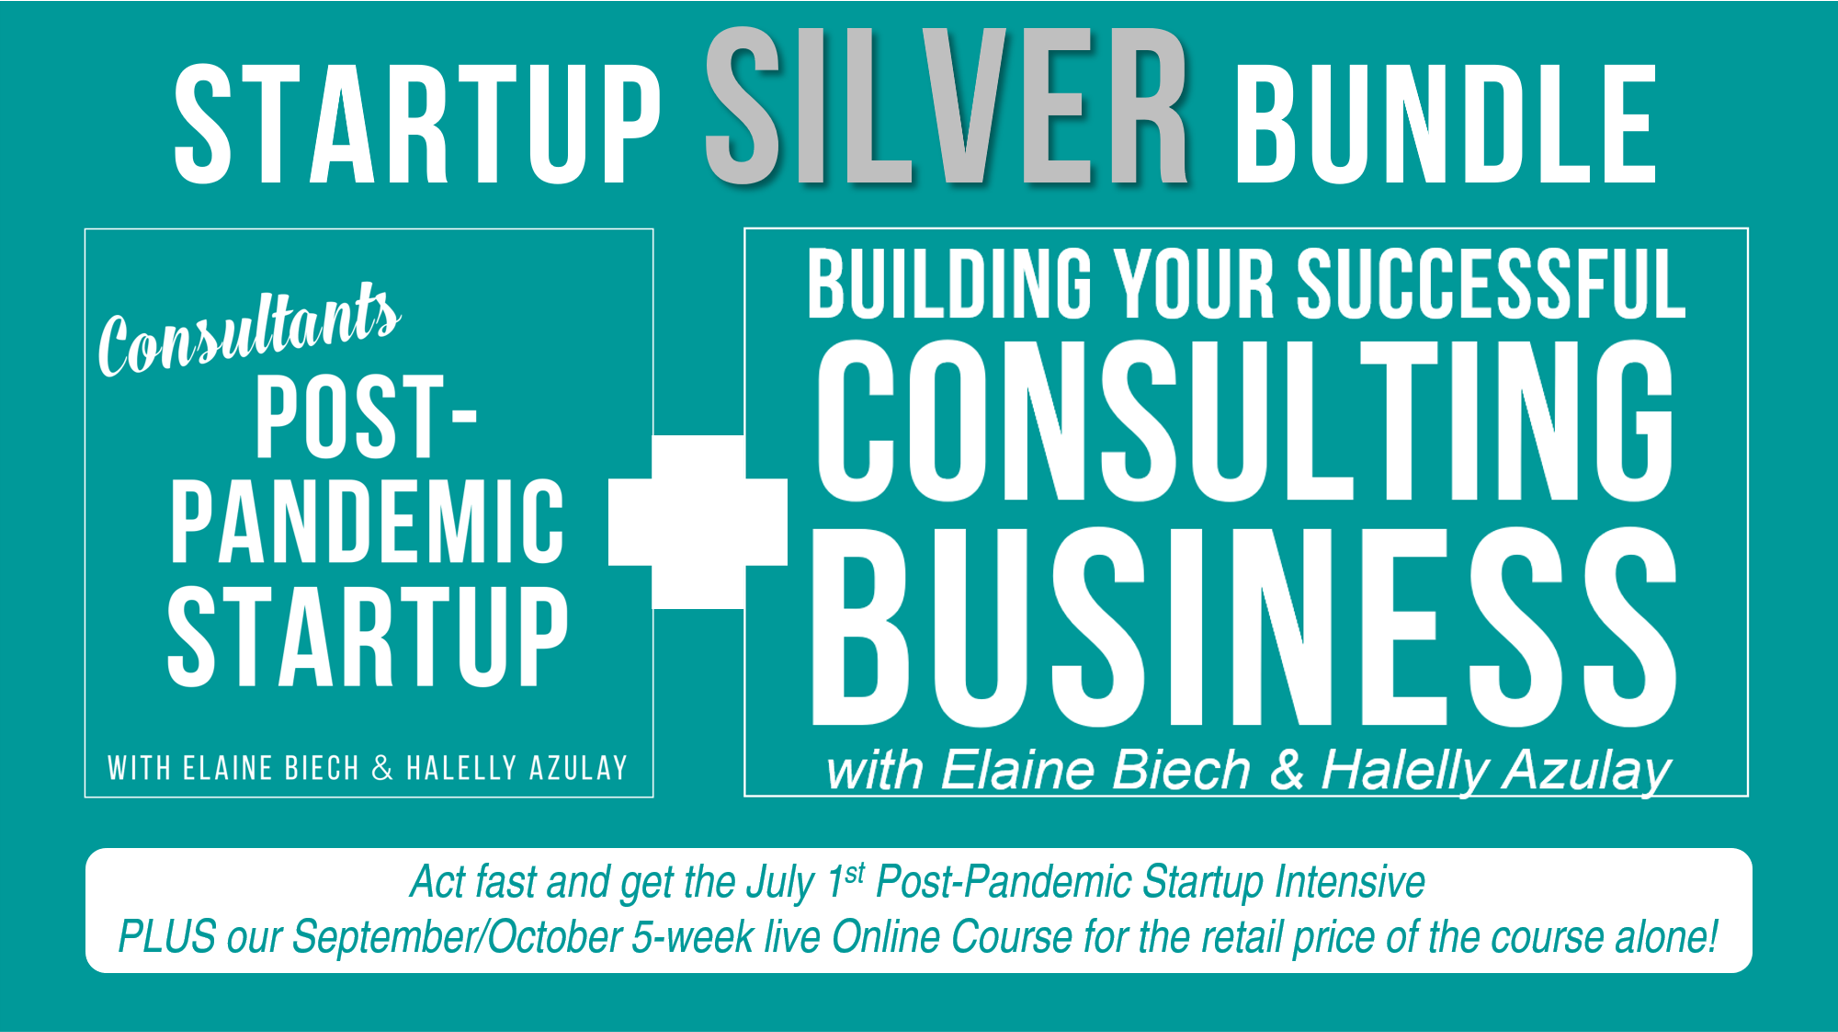 Get BOTH the Consultant Post-Pandemic Startup AND the 5-week Building Your Successful Consulting Business Live Online Course for the retail price of the course alone!